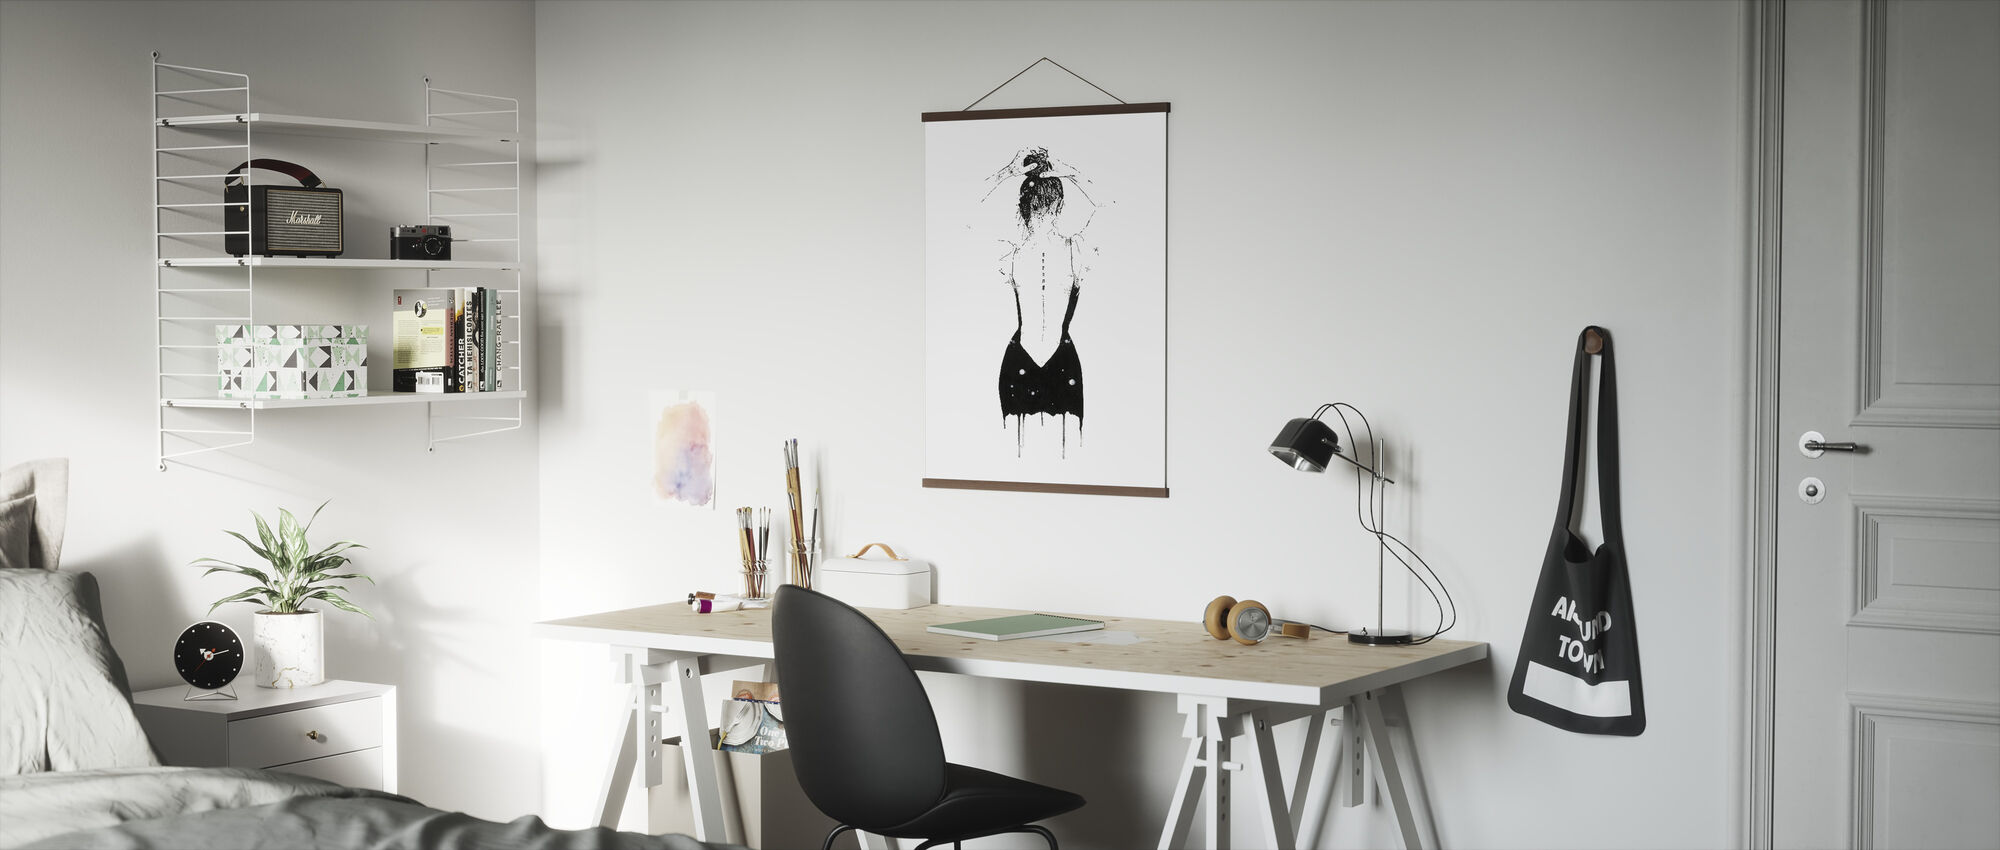 Achiever - Poster - Office